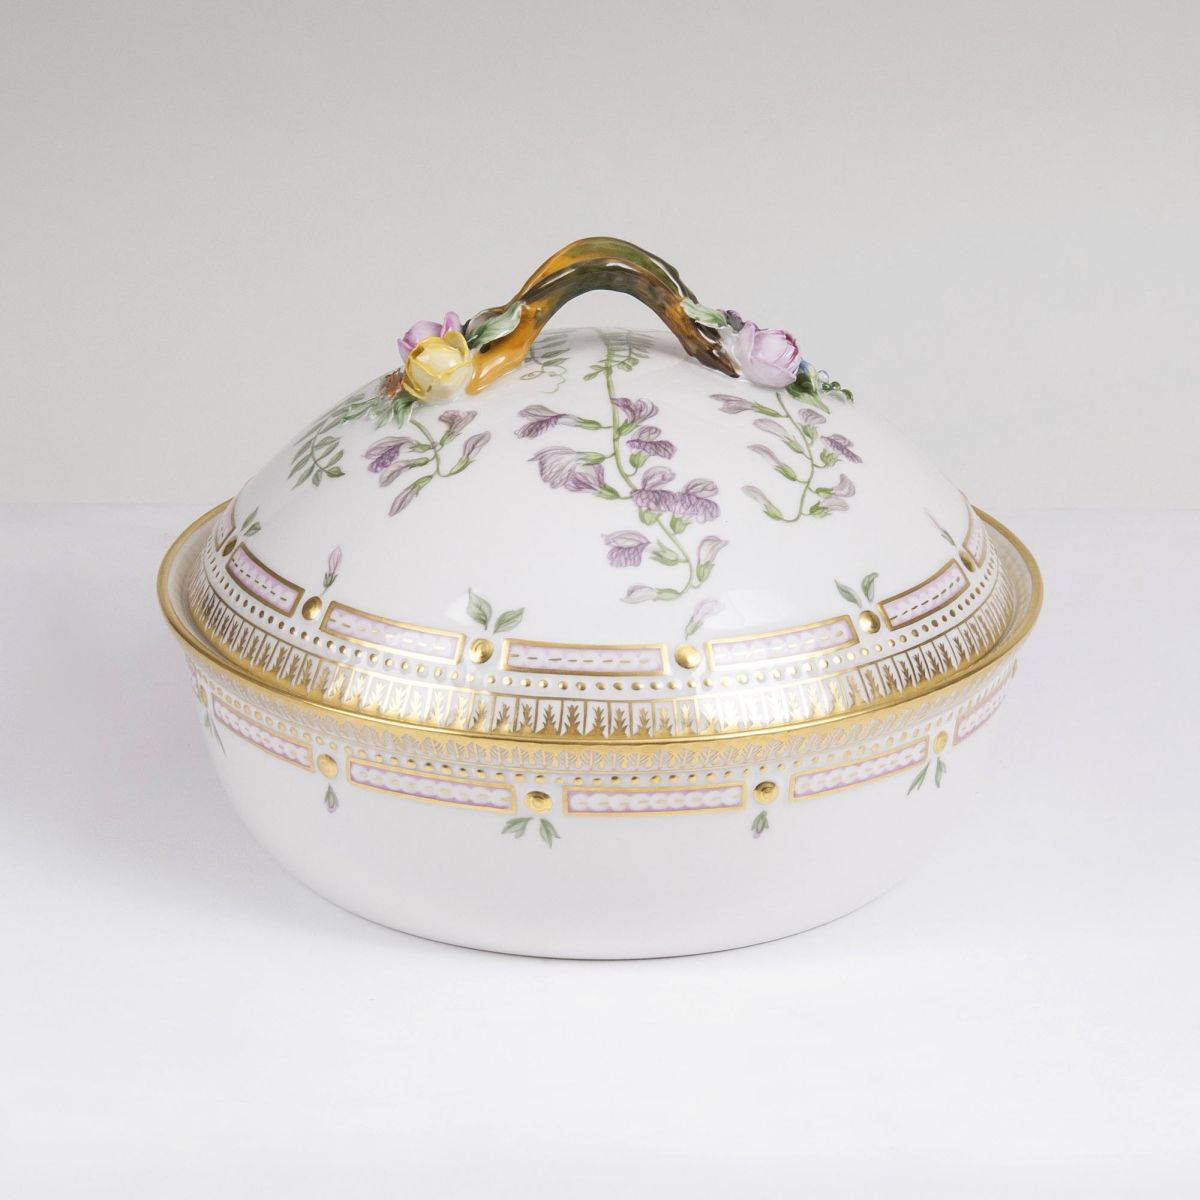 A round Flora Danica Lidded Tureen with Vetch